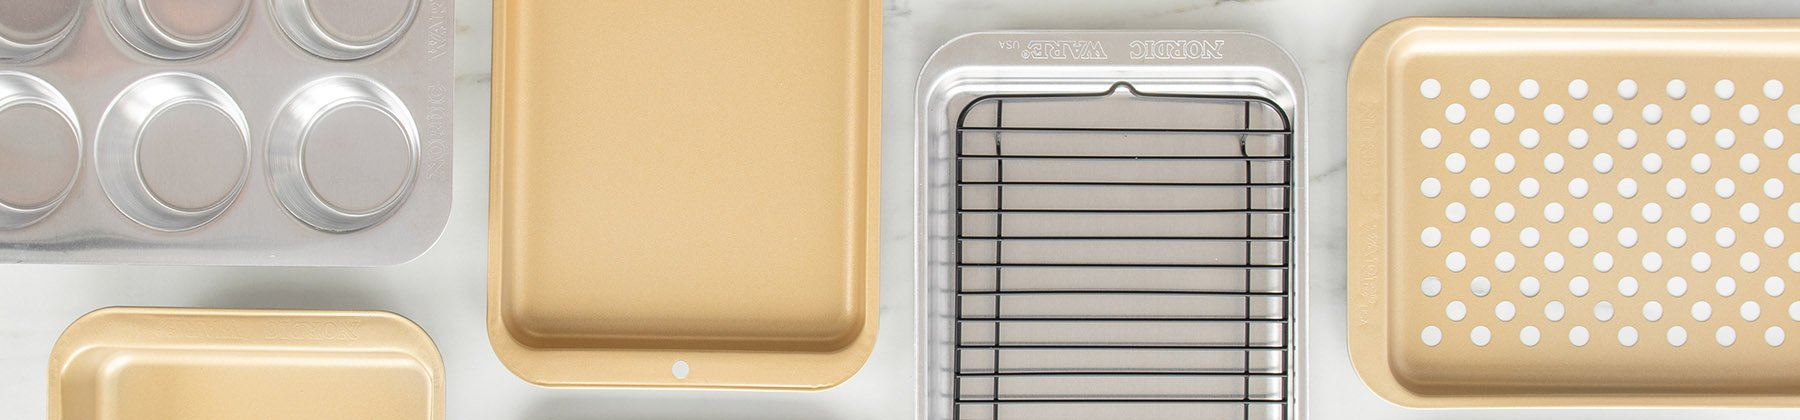 Photo of Nordic Ware sheet pans and cookie sheets.